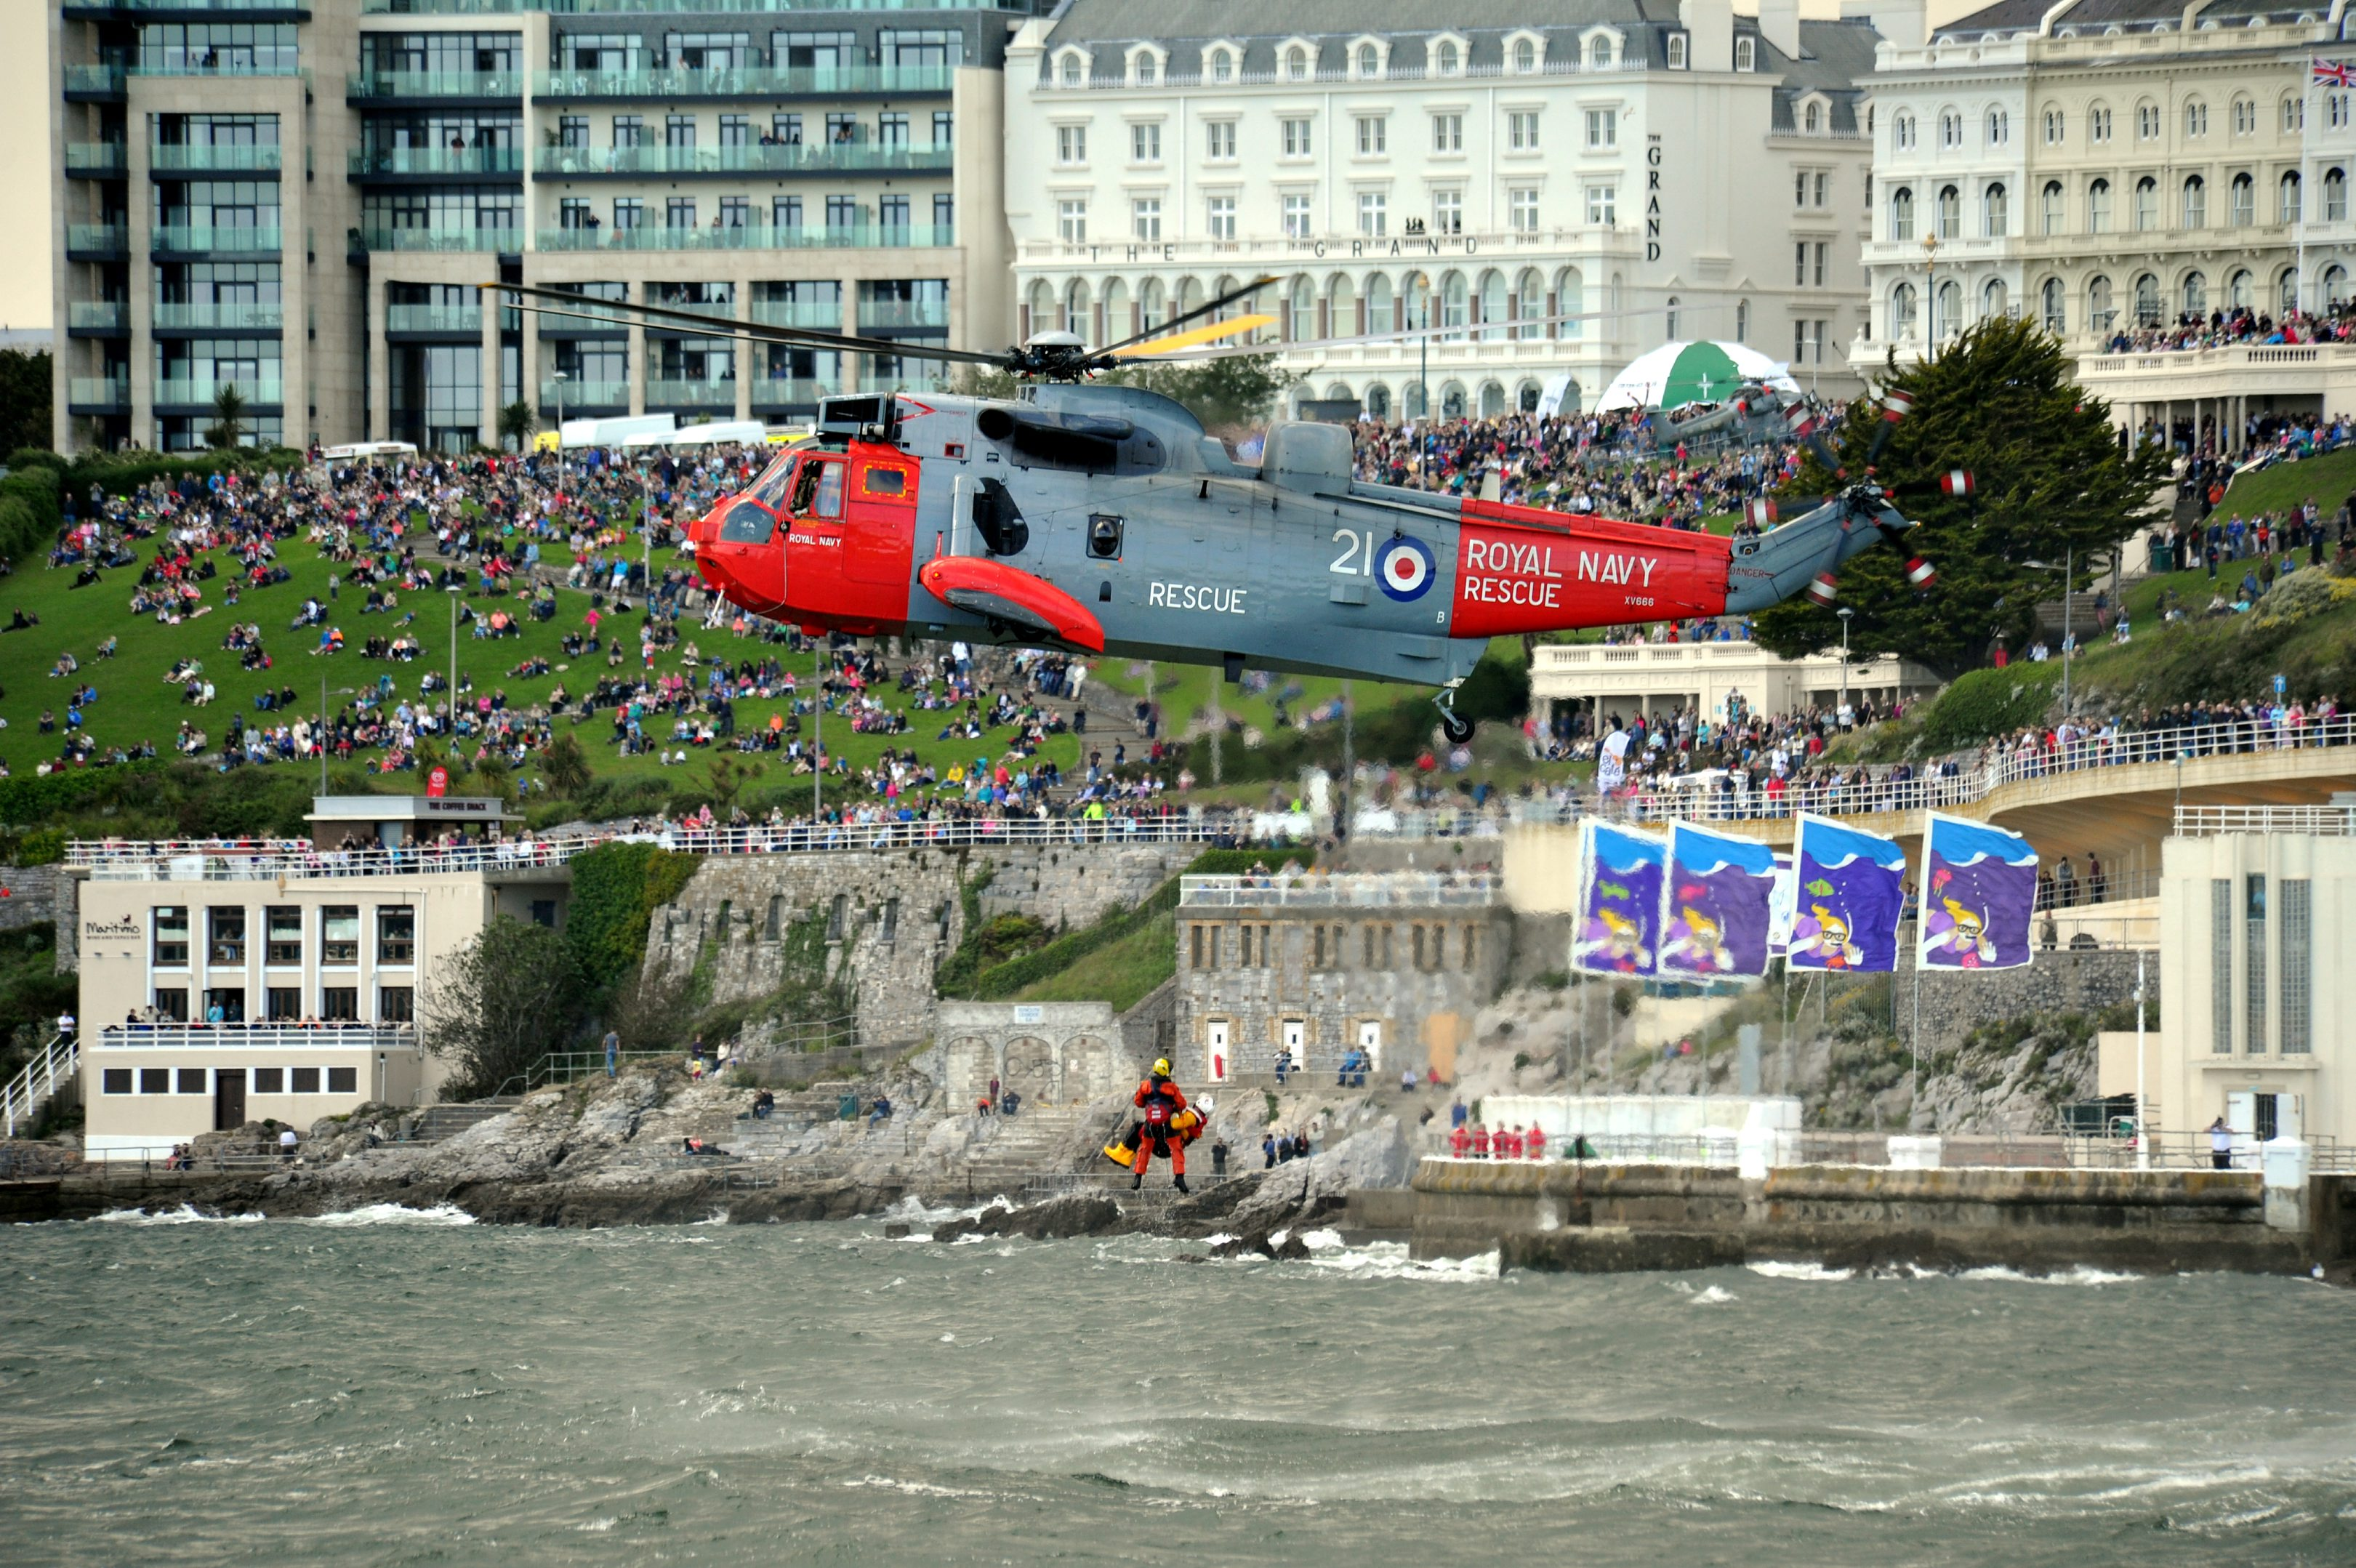 filearmed forces day national event in plymouth mod